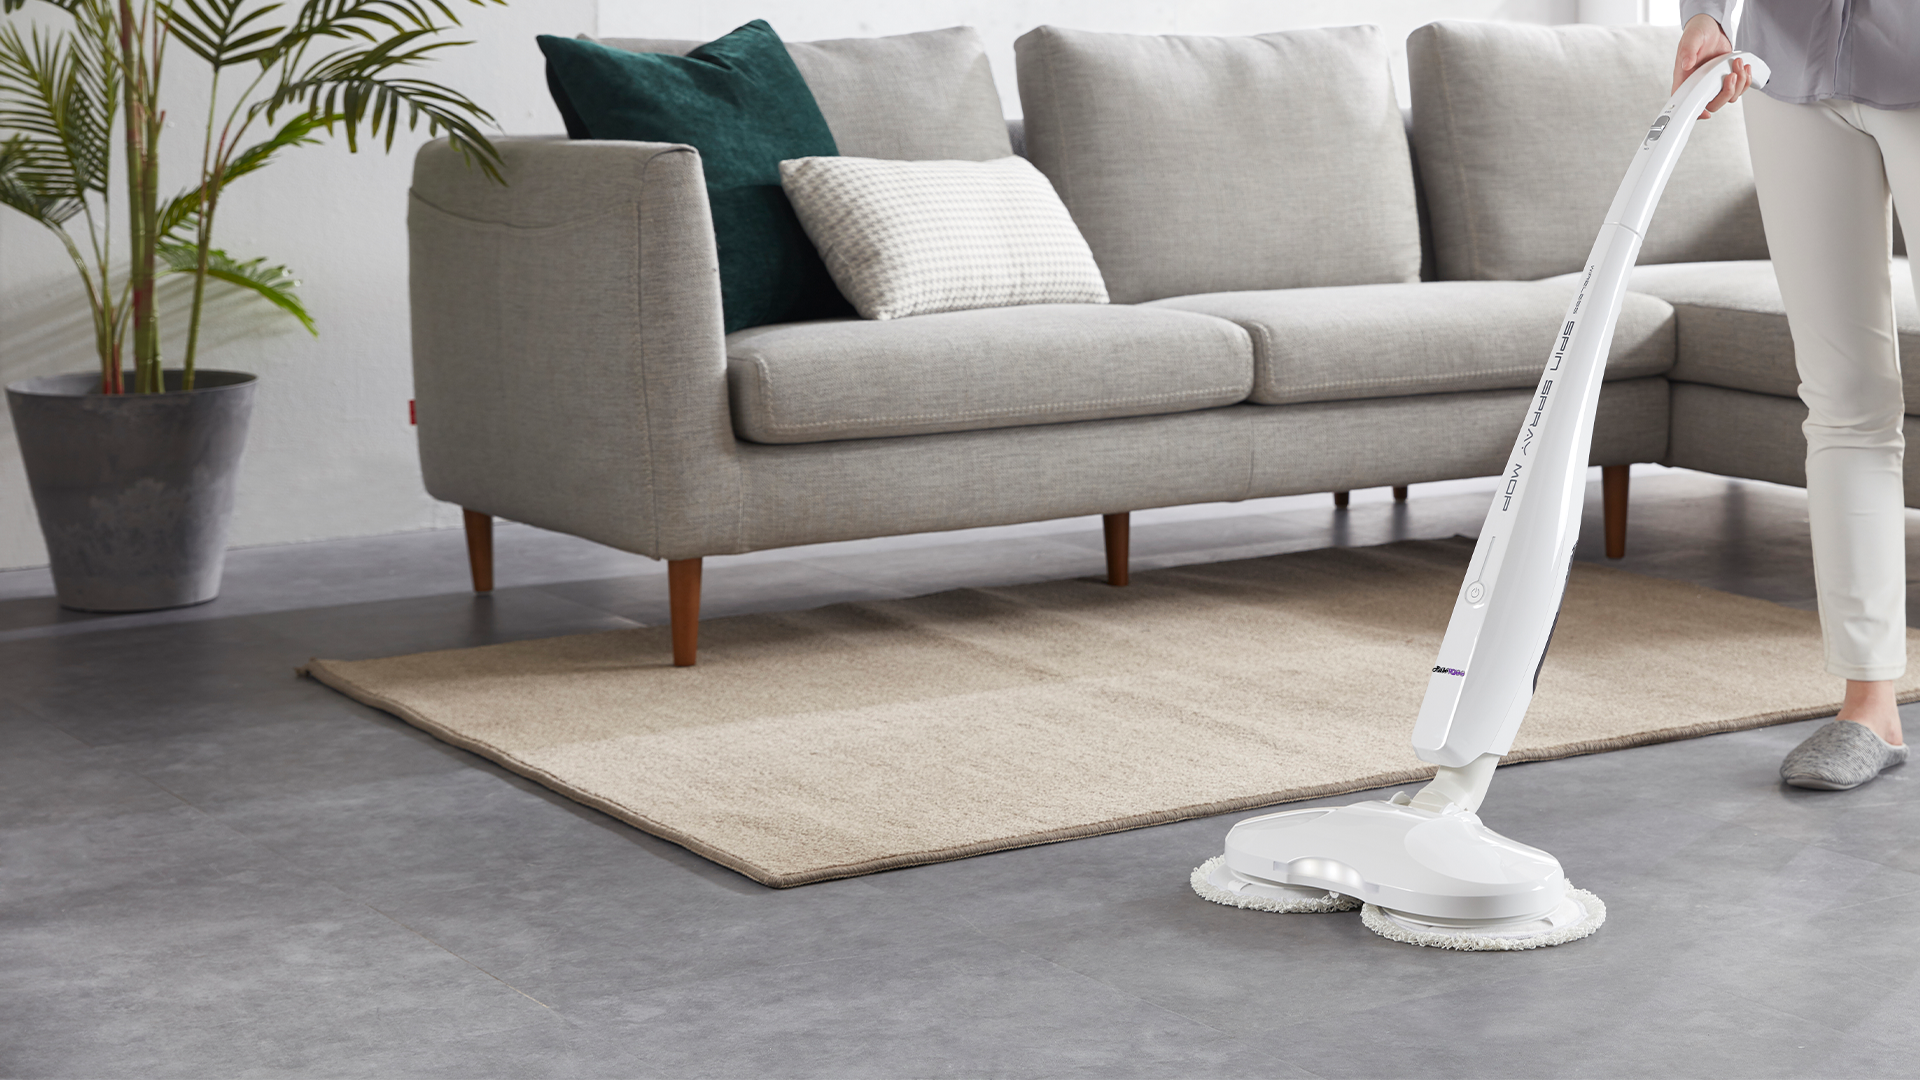 Robokleen wireless spin mop